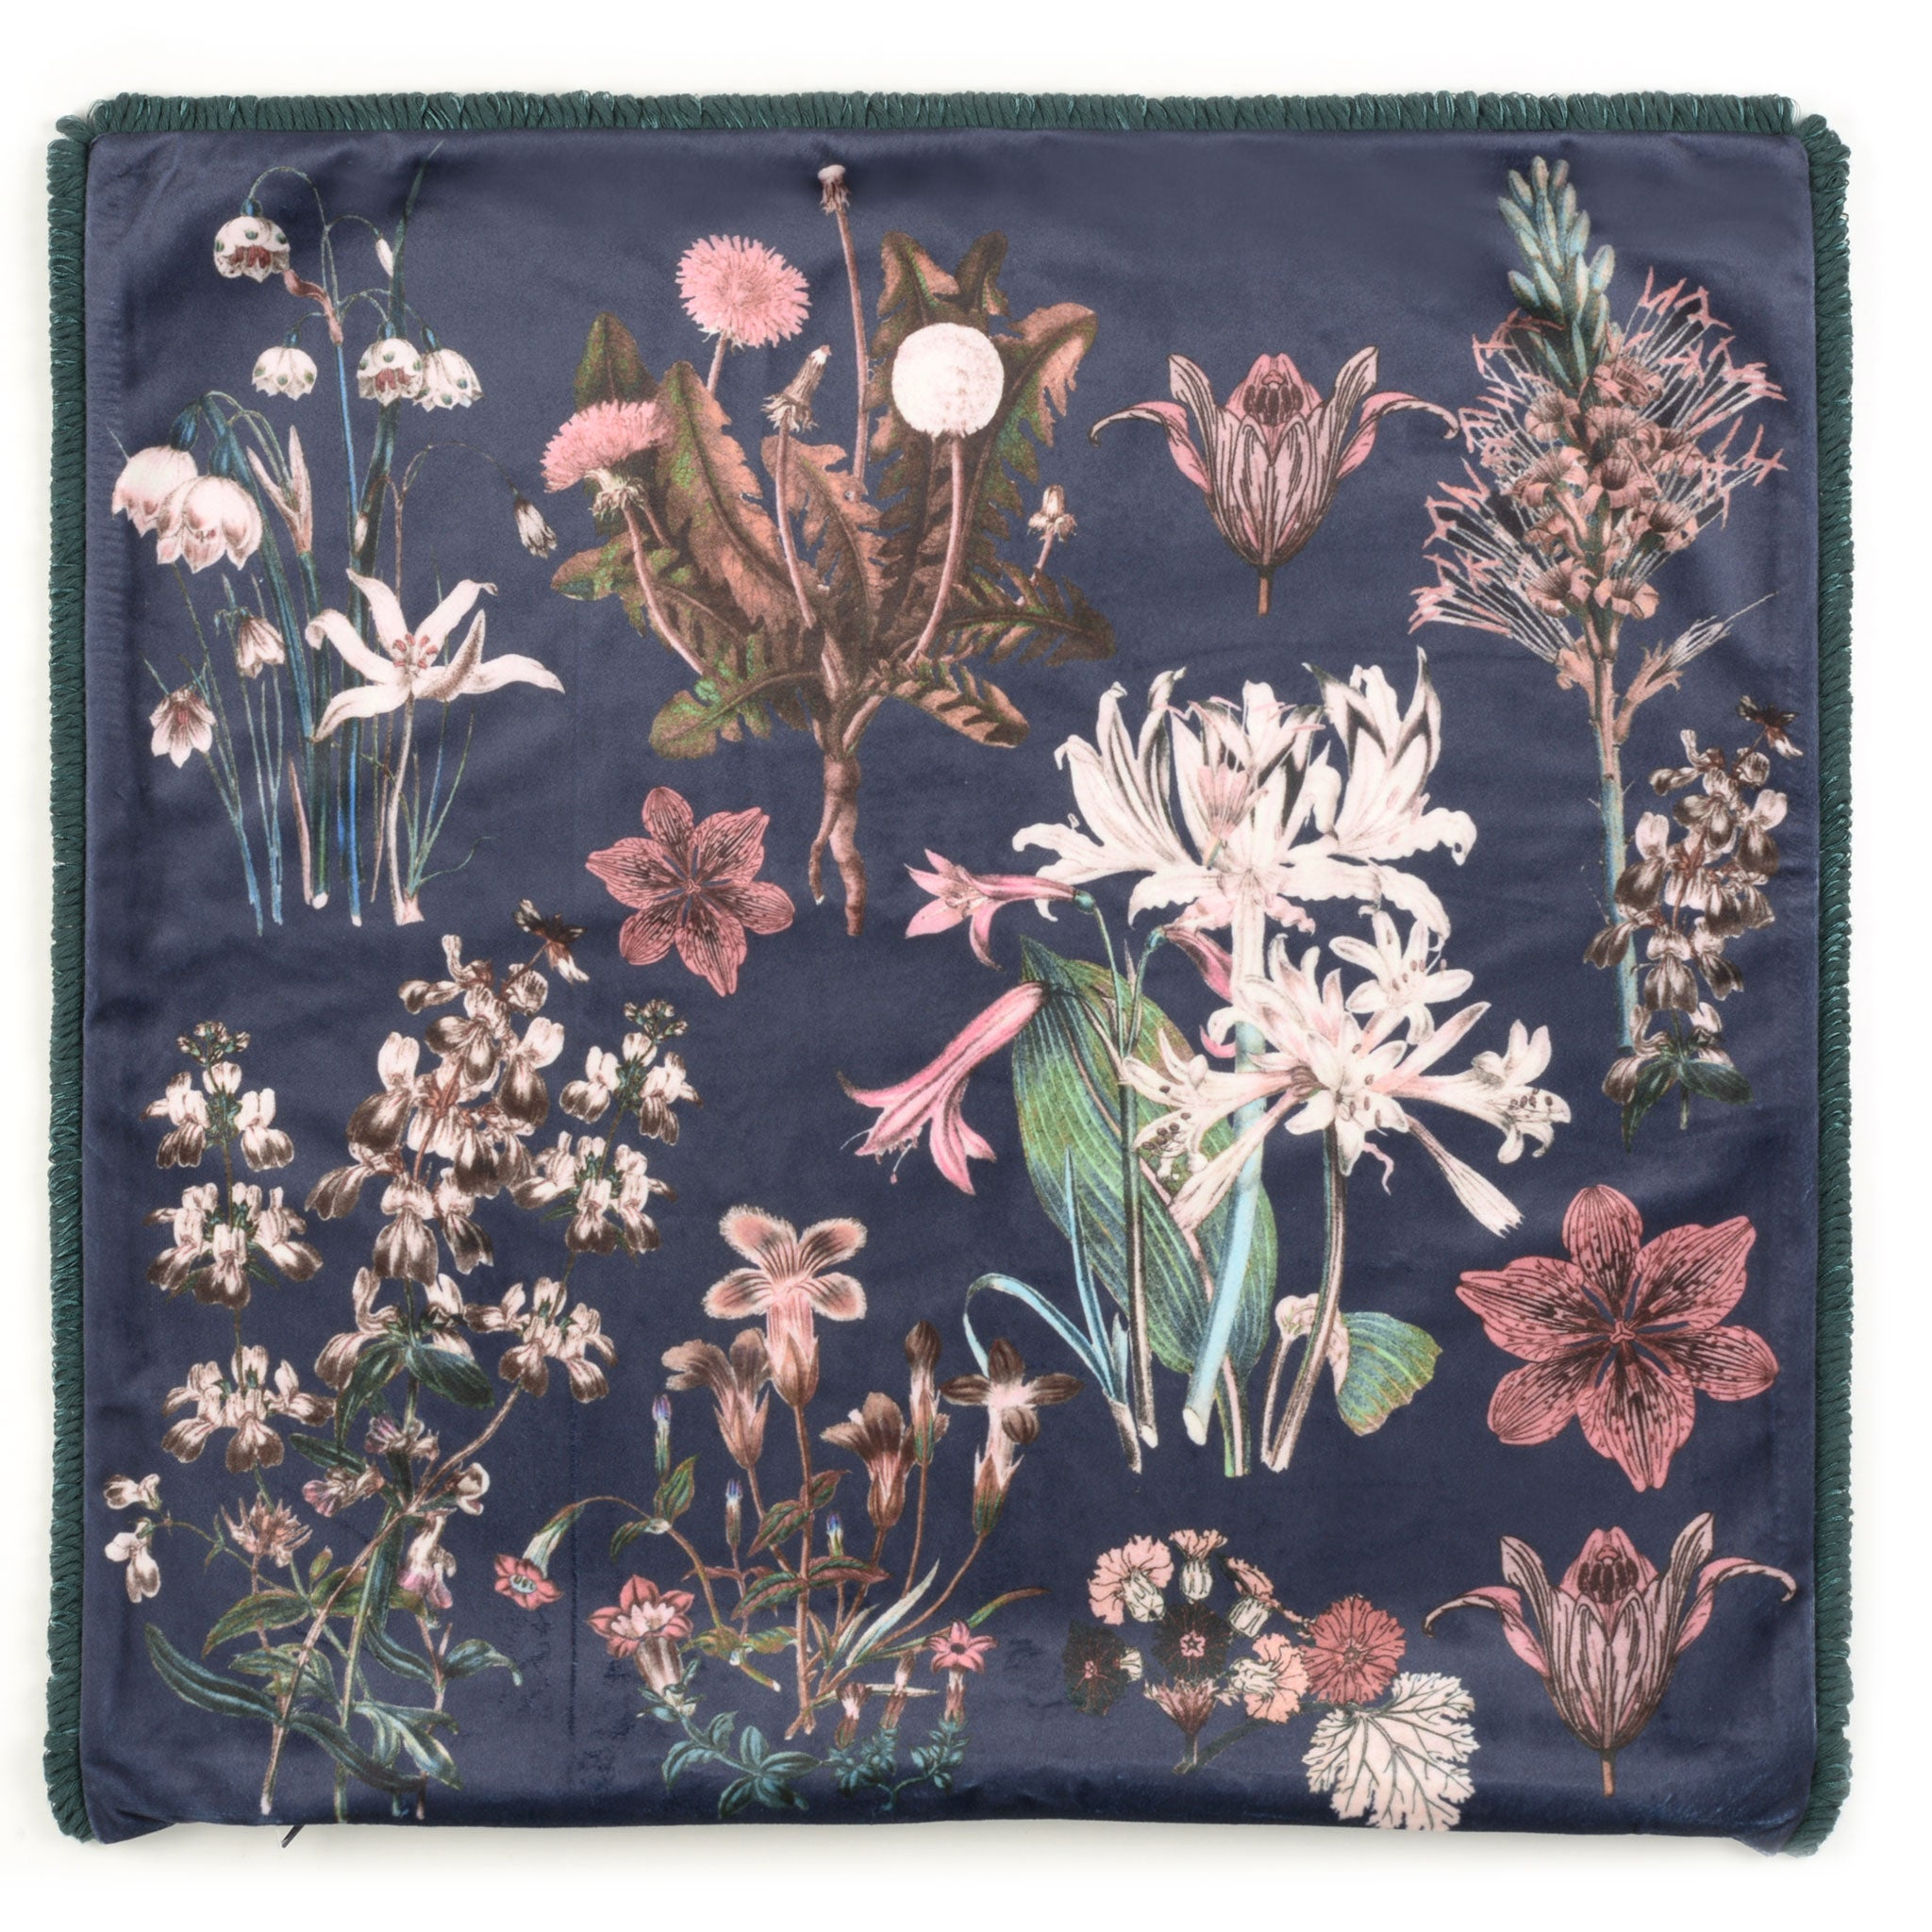 WILD BOUQUET Perna Decorativa 50x50